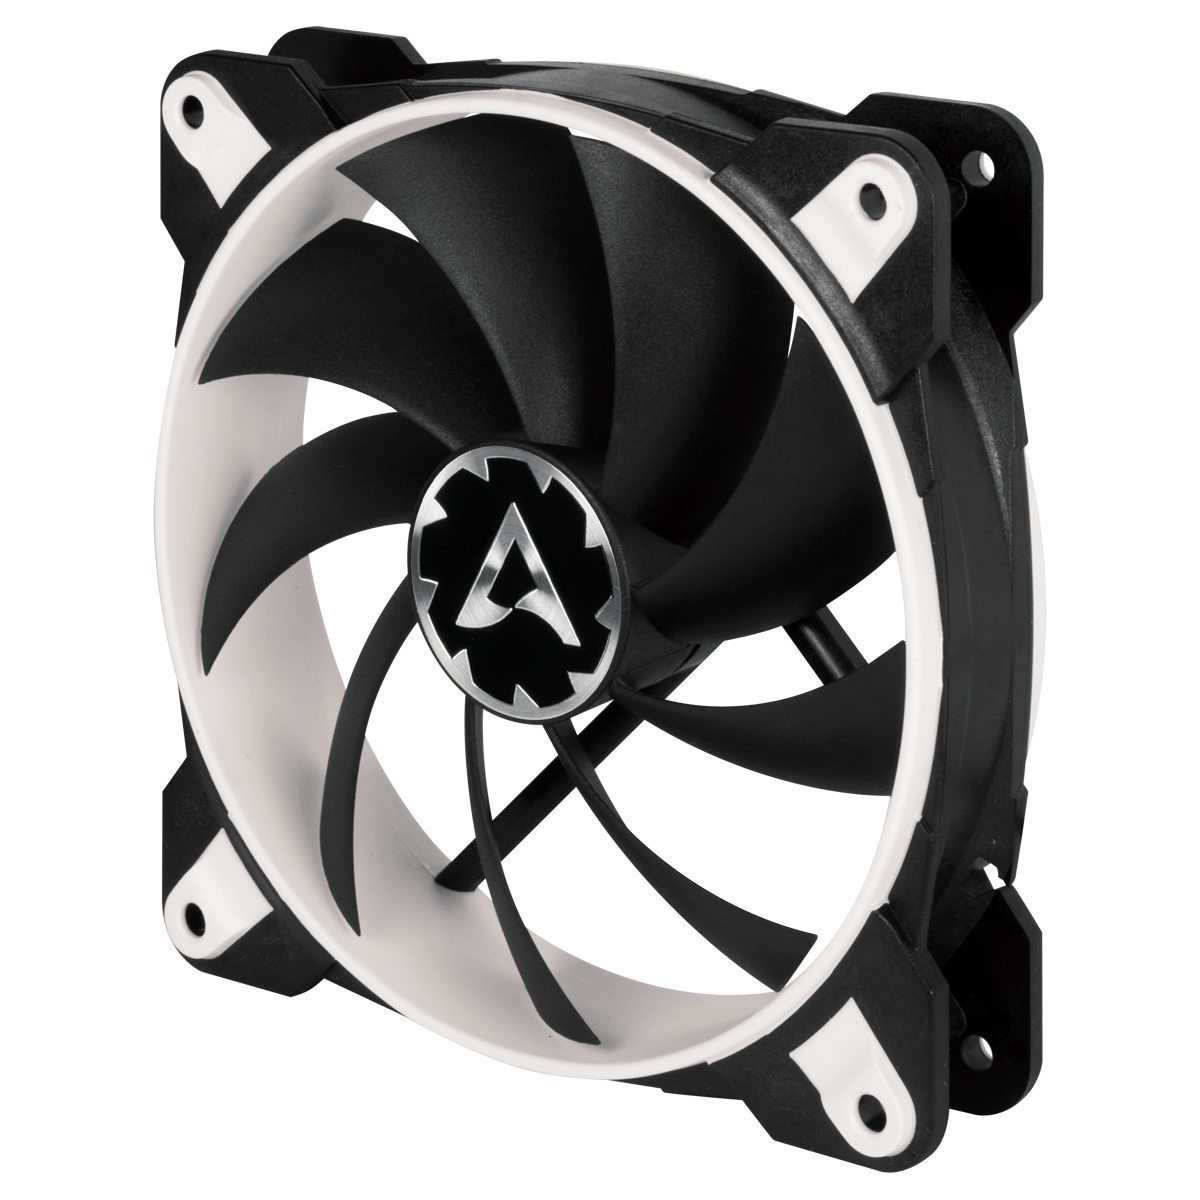 Fan 120mm BioniX F120 White